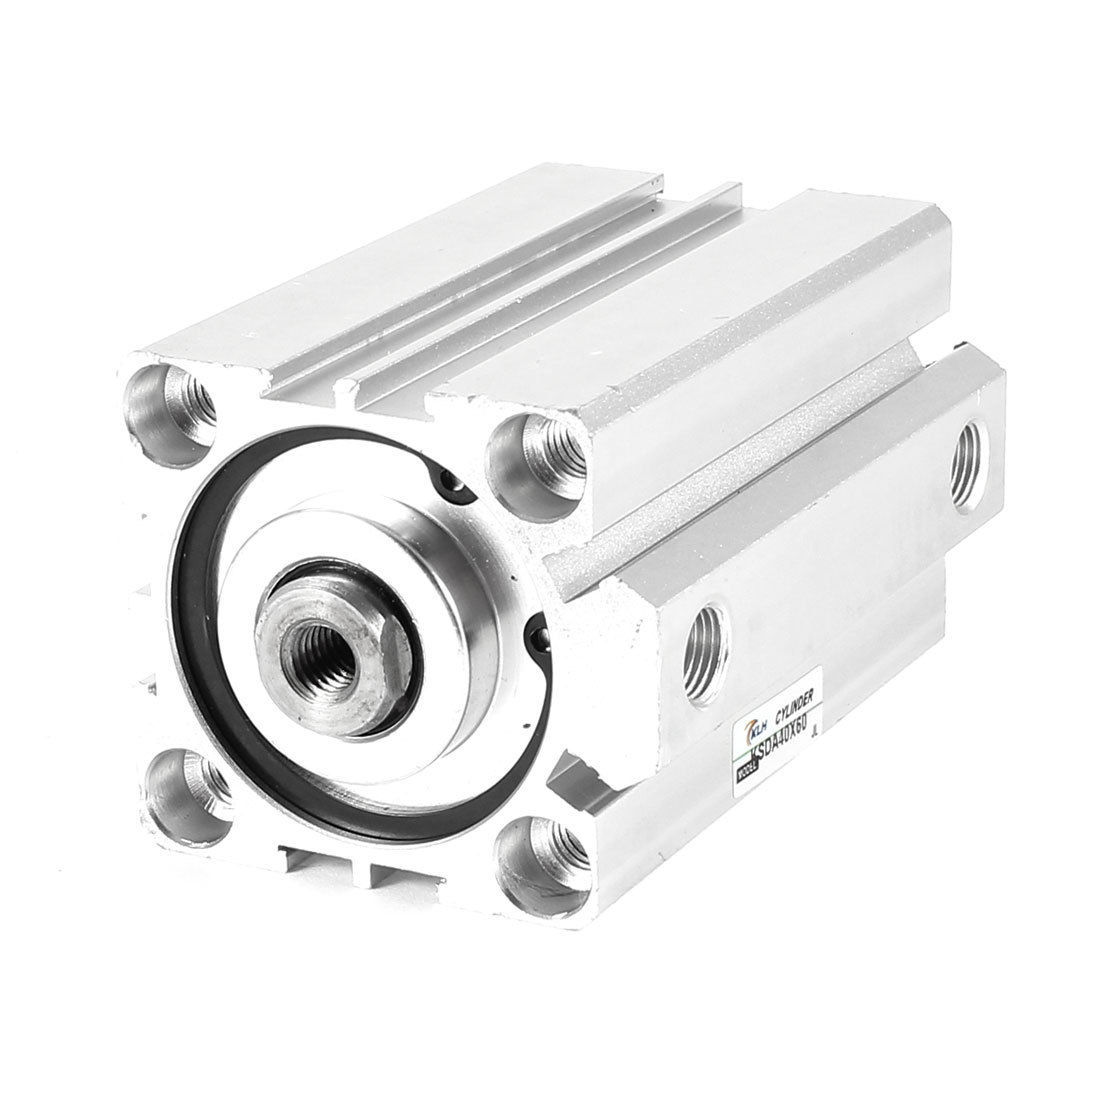 1 Pcs 50mm Bore 25mm Stroke Stainless steel Pneumatic Air Cylinder SDA50-25 constant delight 9%